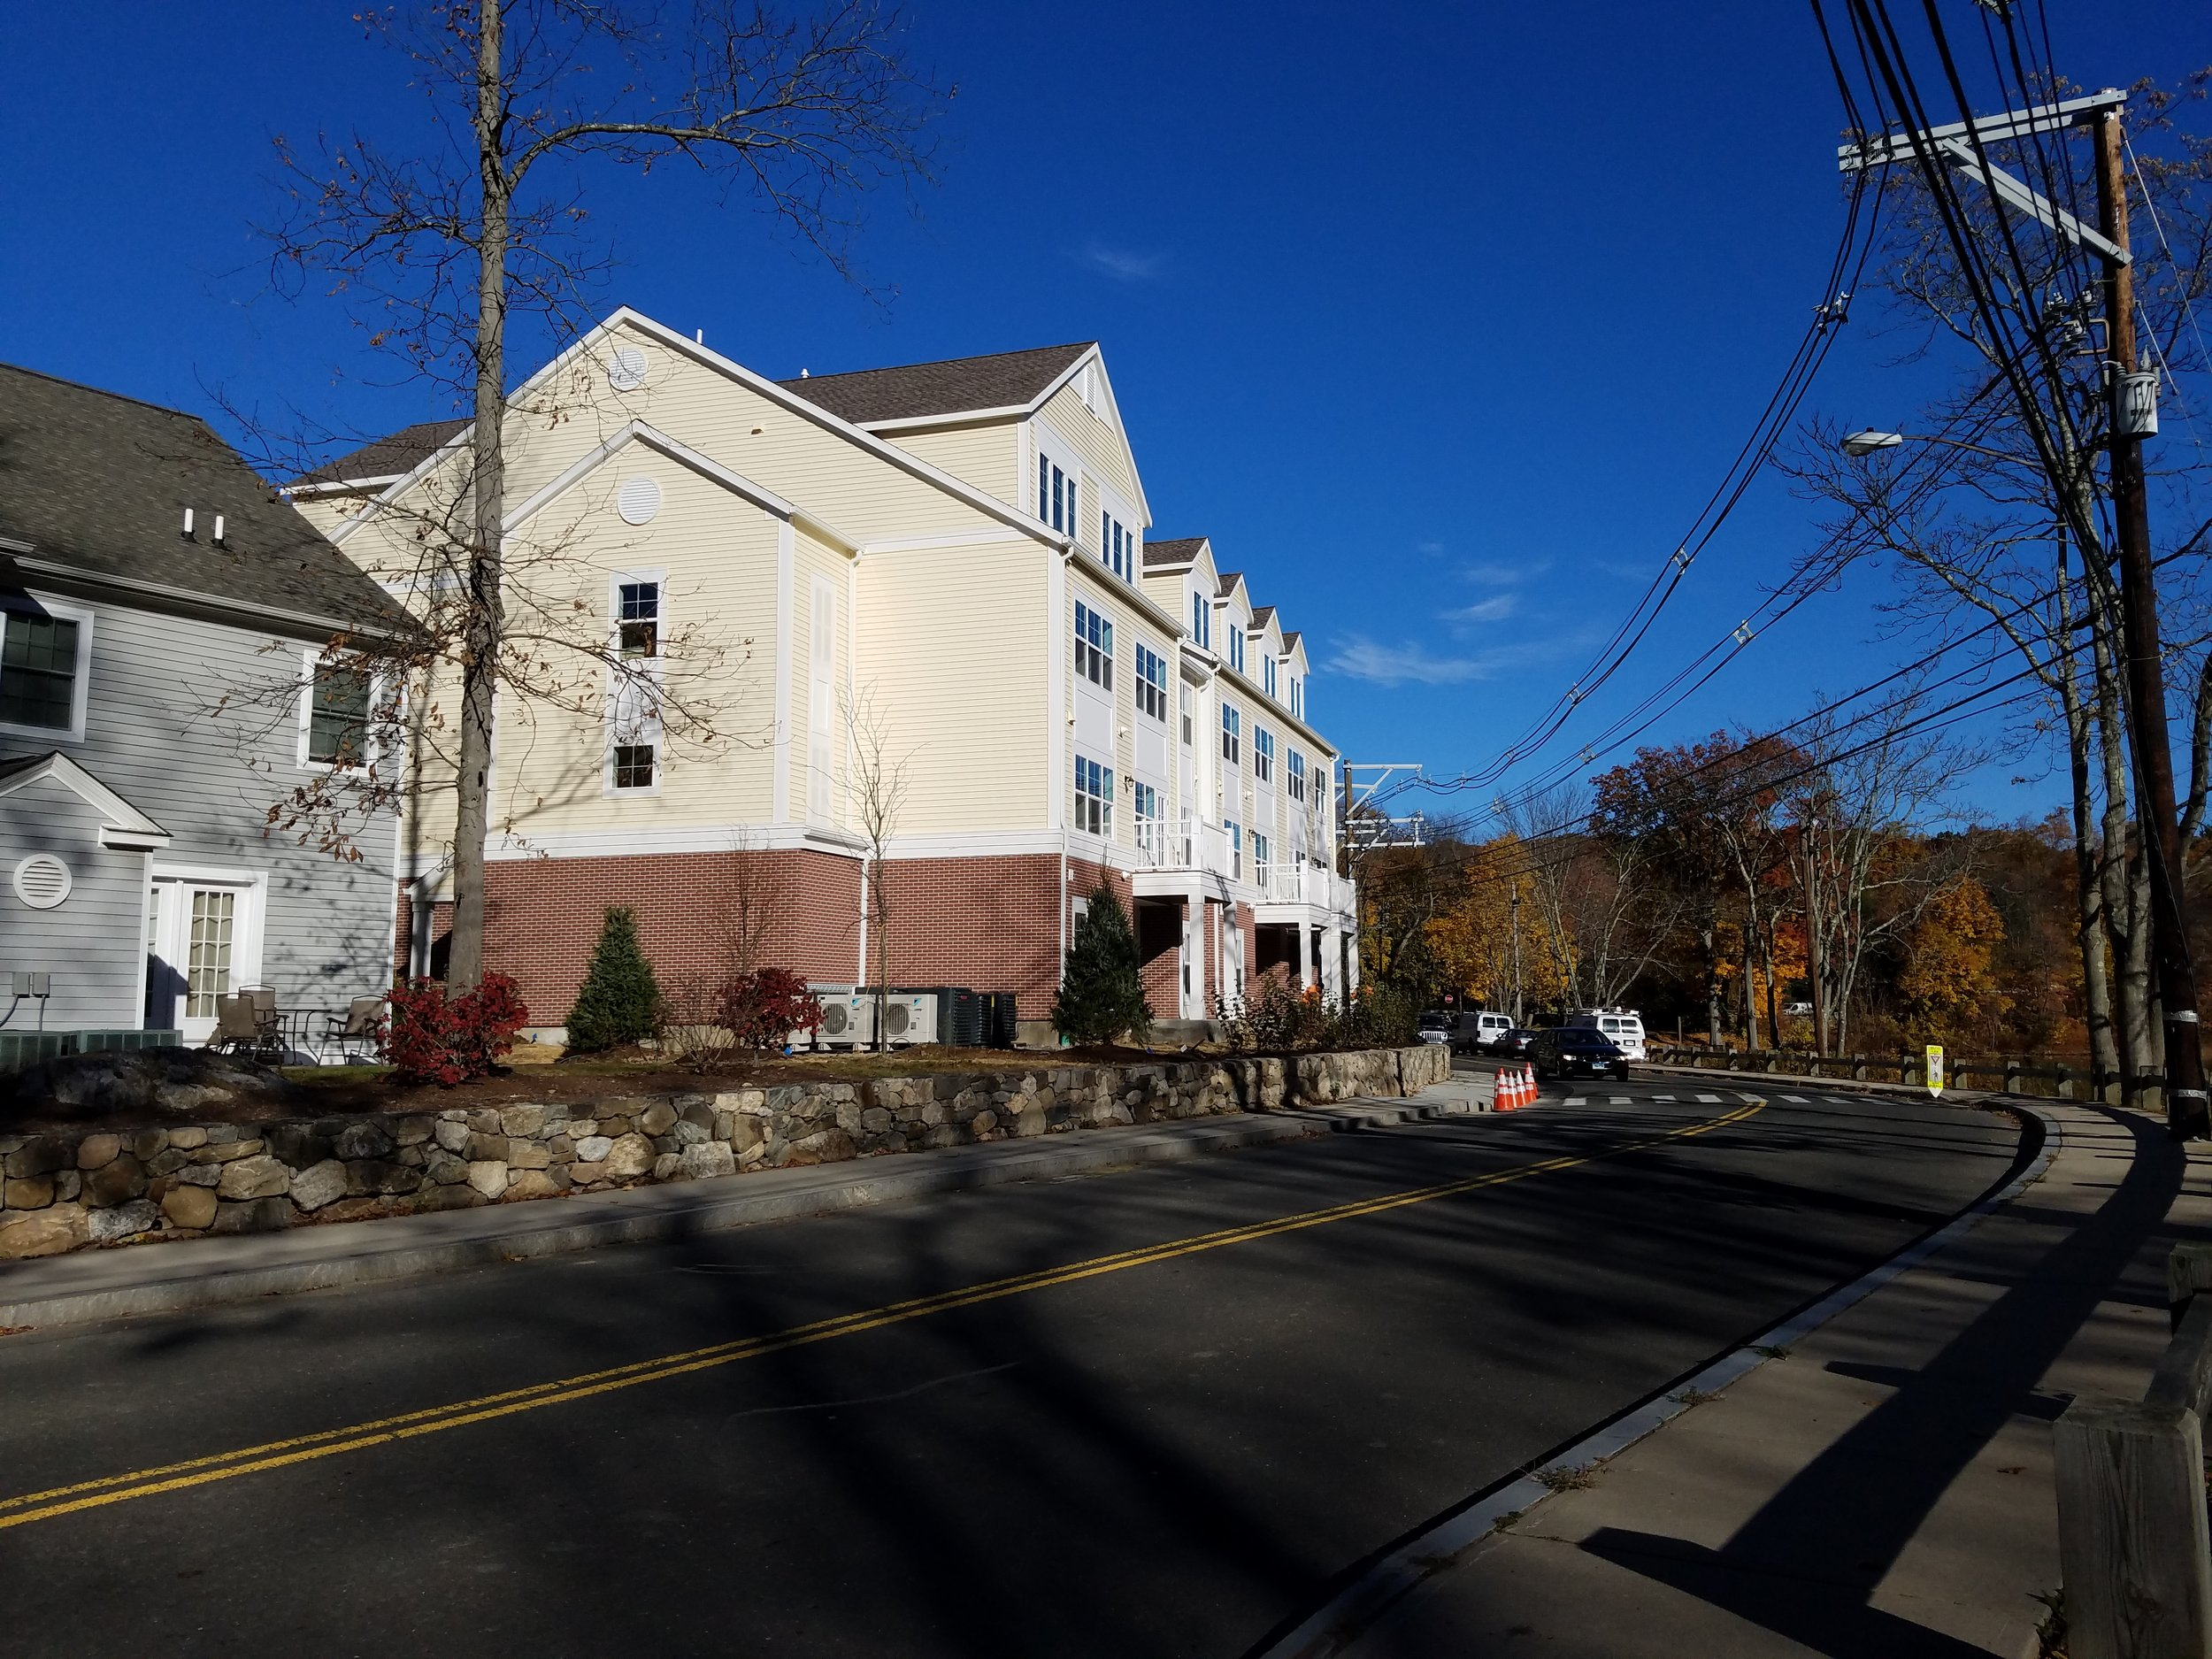 Millport Phase I - New Canaan, CT - Millport Phase I is located in a quiet residential area of New Canaan a half-mile from its lively downtown, which includes grocery stores, banks, pharmacies, a post office, a library, and many other daily conveniences. There is a pond and park across the street and an elementary school, fields and playground one block away.Role: Consultant to the Housing Authority of the Town of New Canaan (HANC)Project Type / Status: New Construction / Completed 2016Project Size: 33 units / $10.5 millionAffordability: 100% affordable to 80% of State Median IncomeFinancing: 4% Low-Income Housing Tax Credits to People's United Bank, Tax-Exempt Bond financing from Bankwell, Town of New Canaan funding